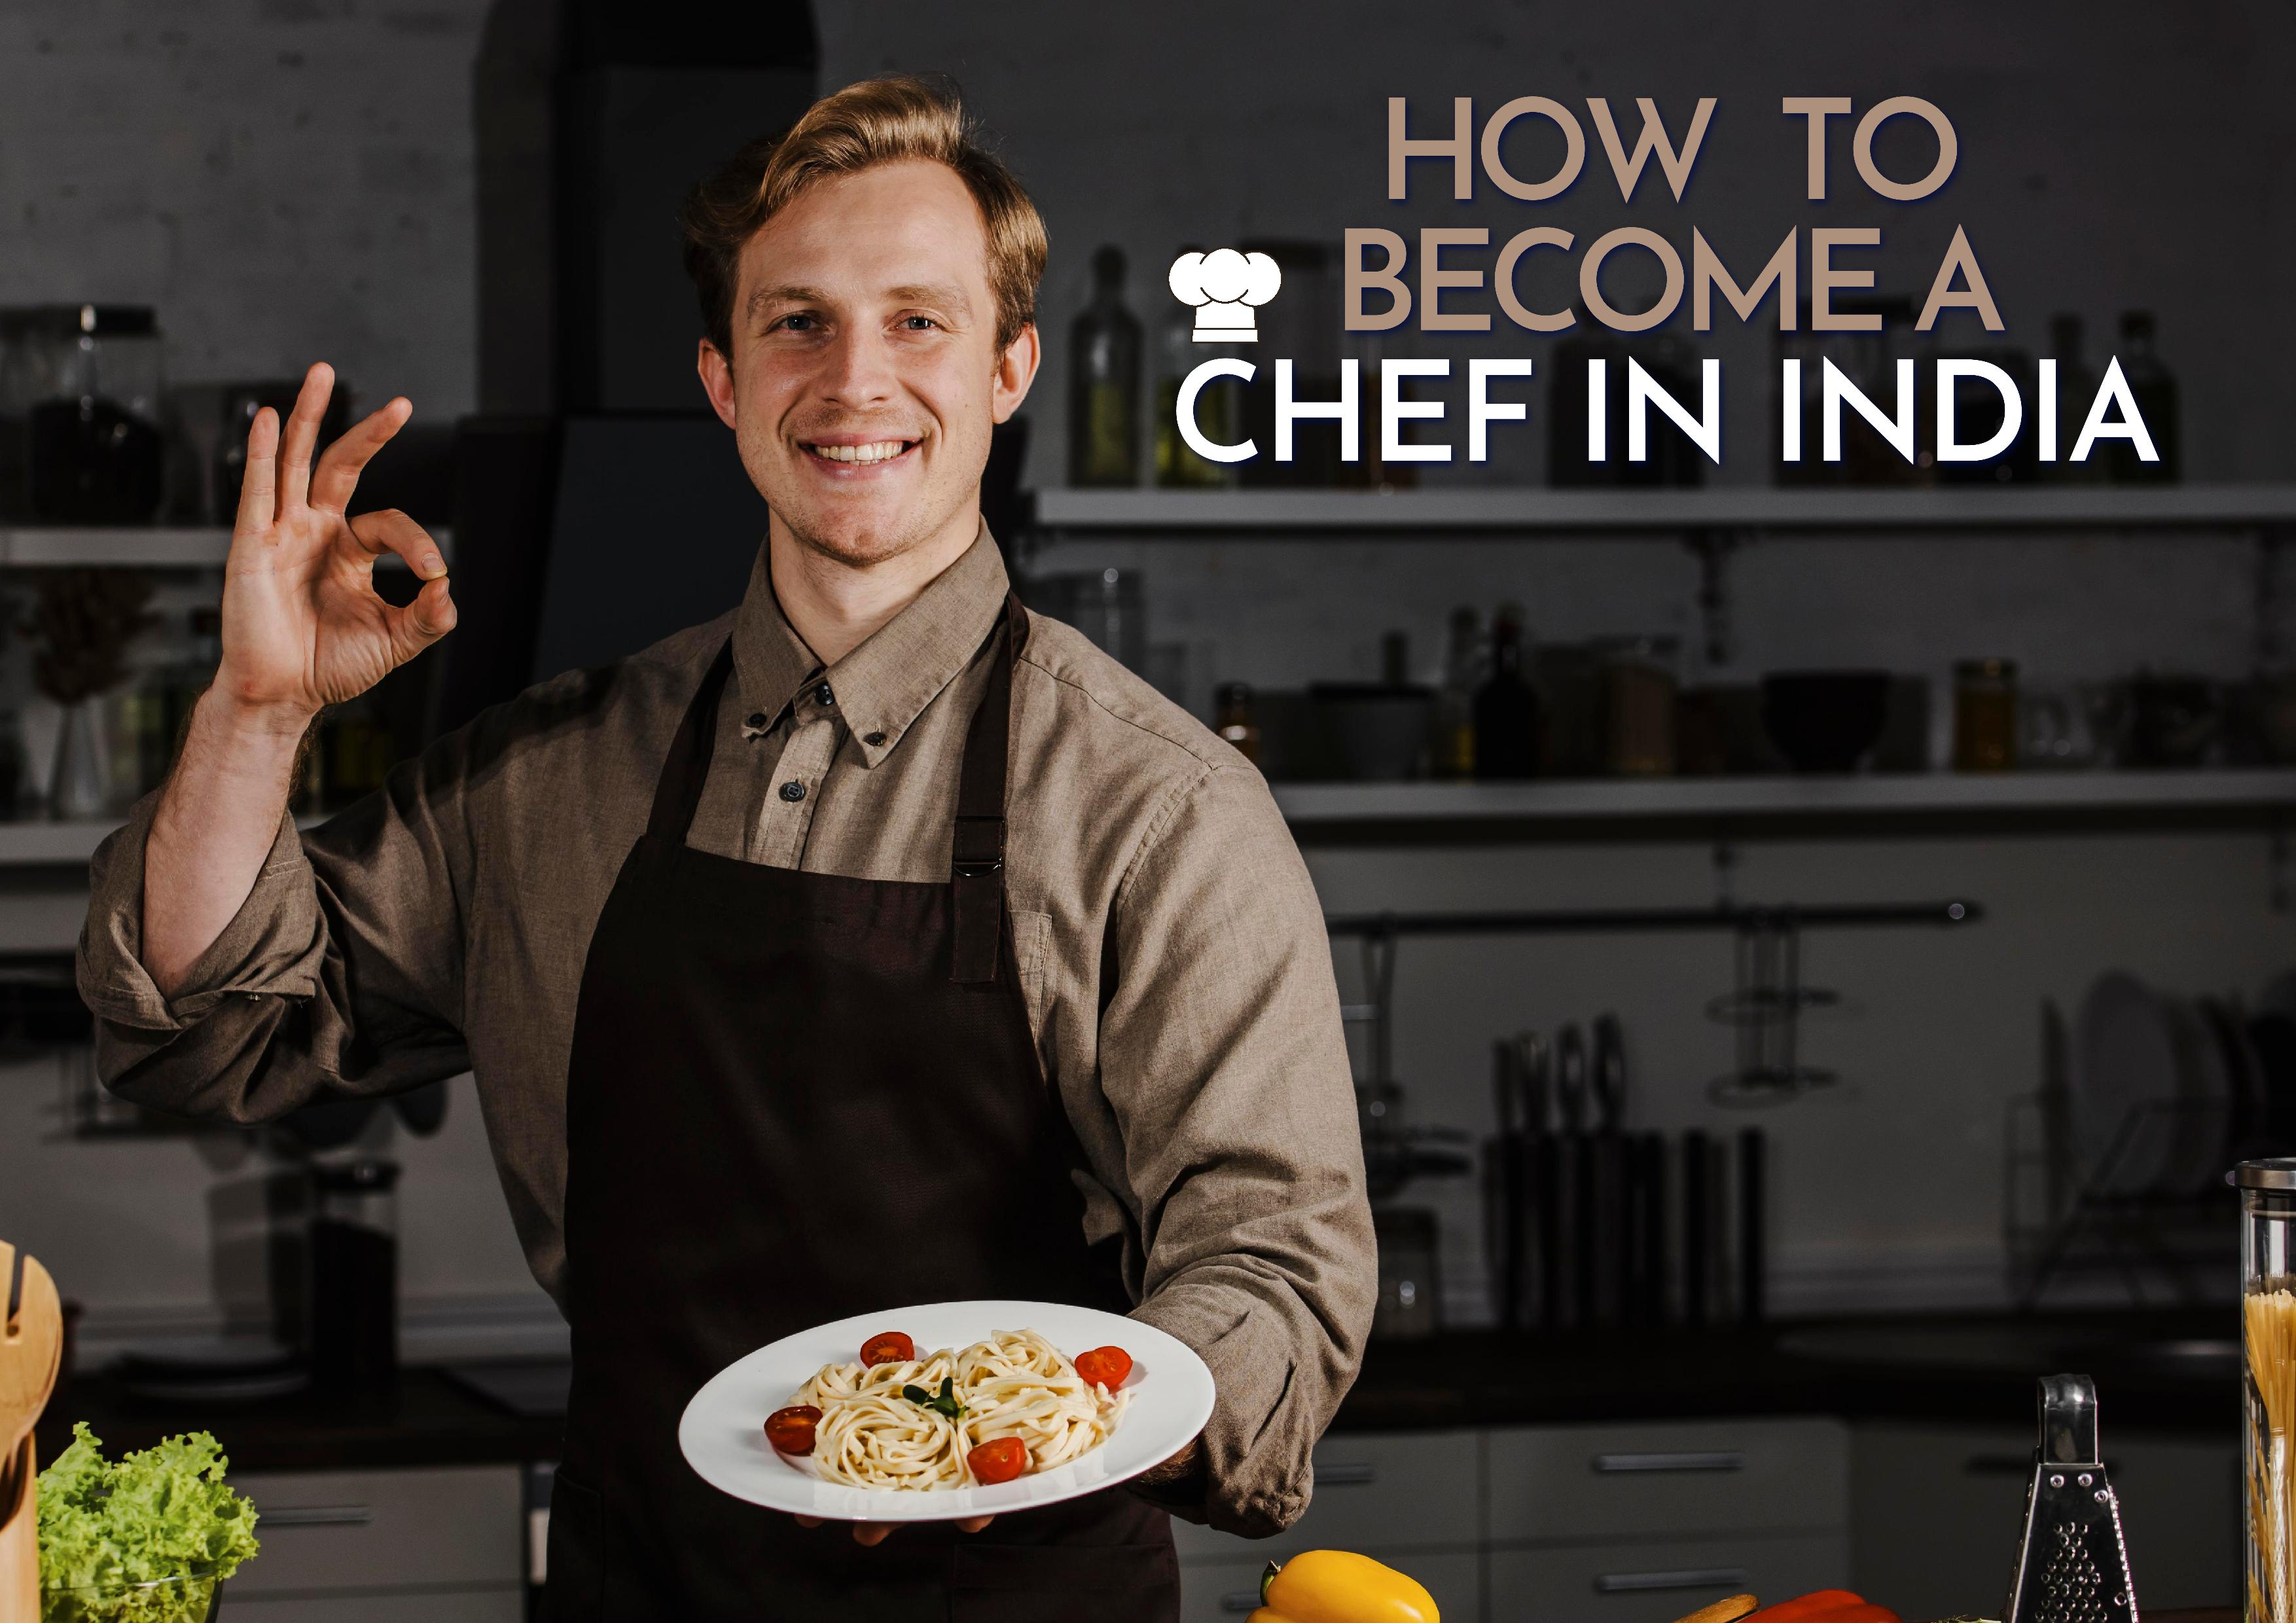 Chef in India